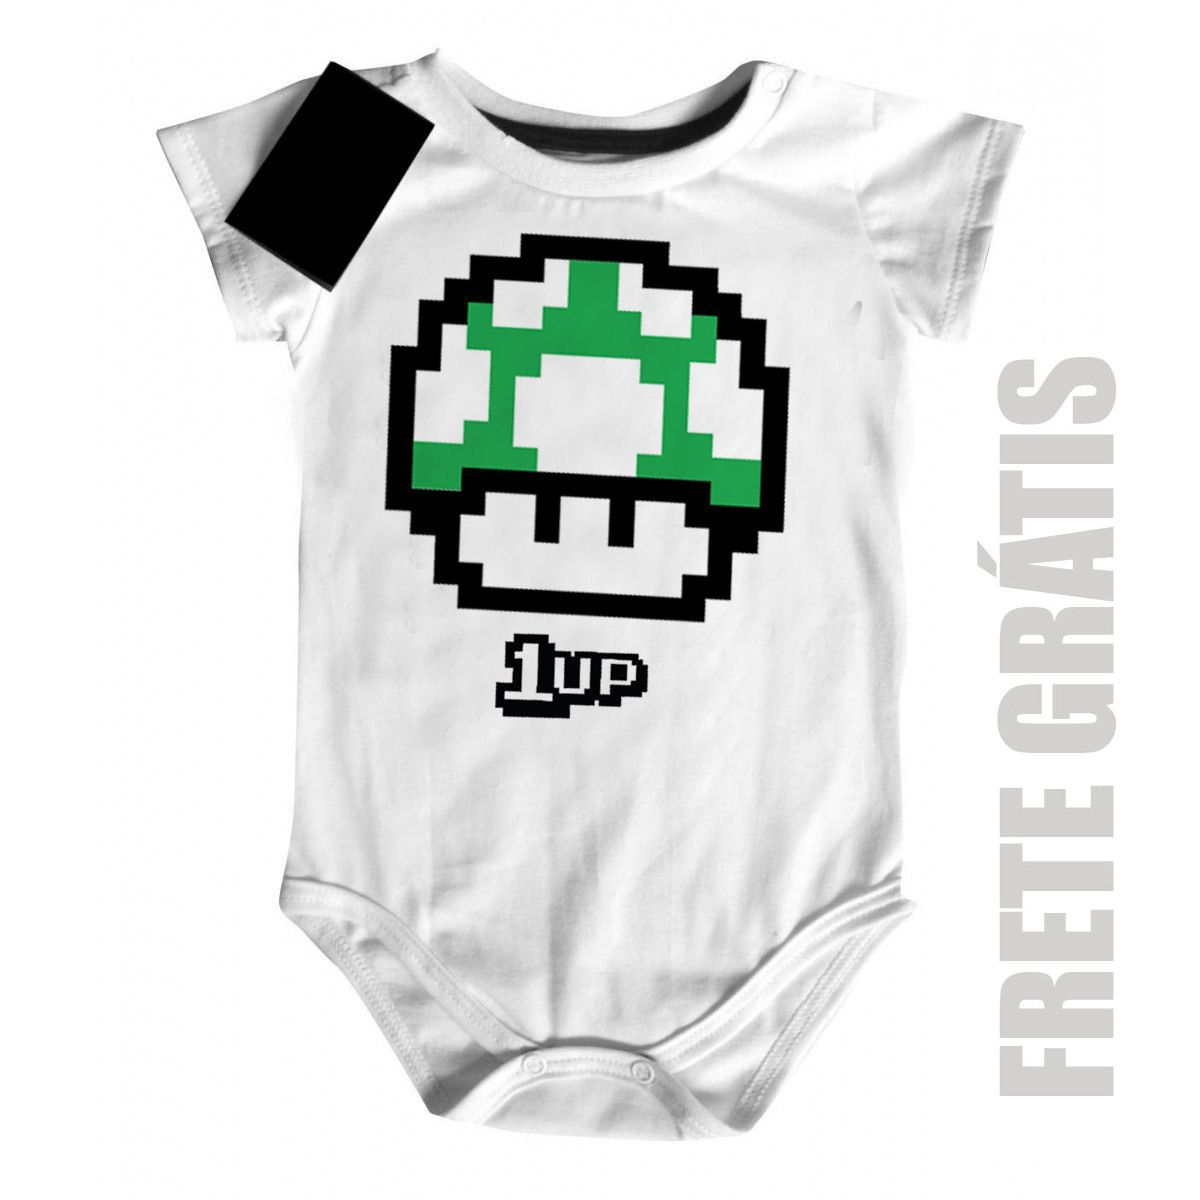 Body Bebe Nerd Geek -  Mario 1 Vida - White  - Baby Monster S/A